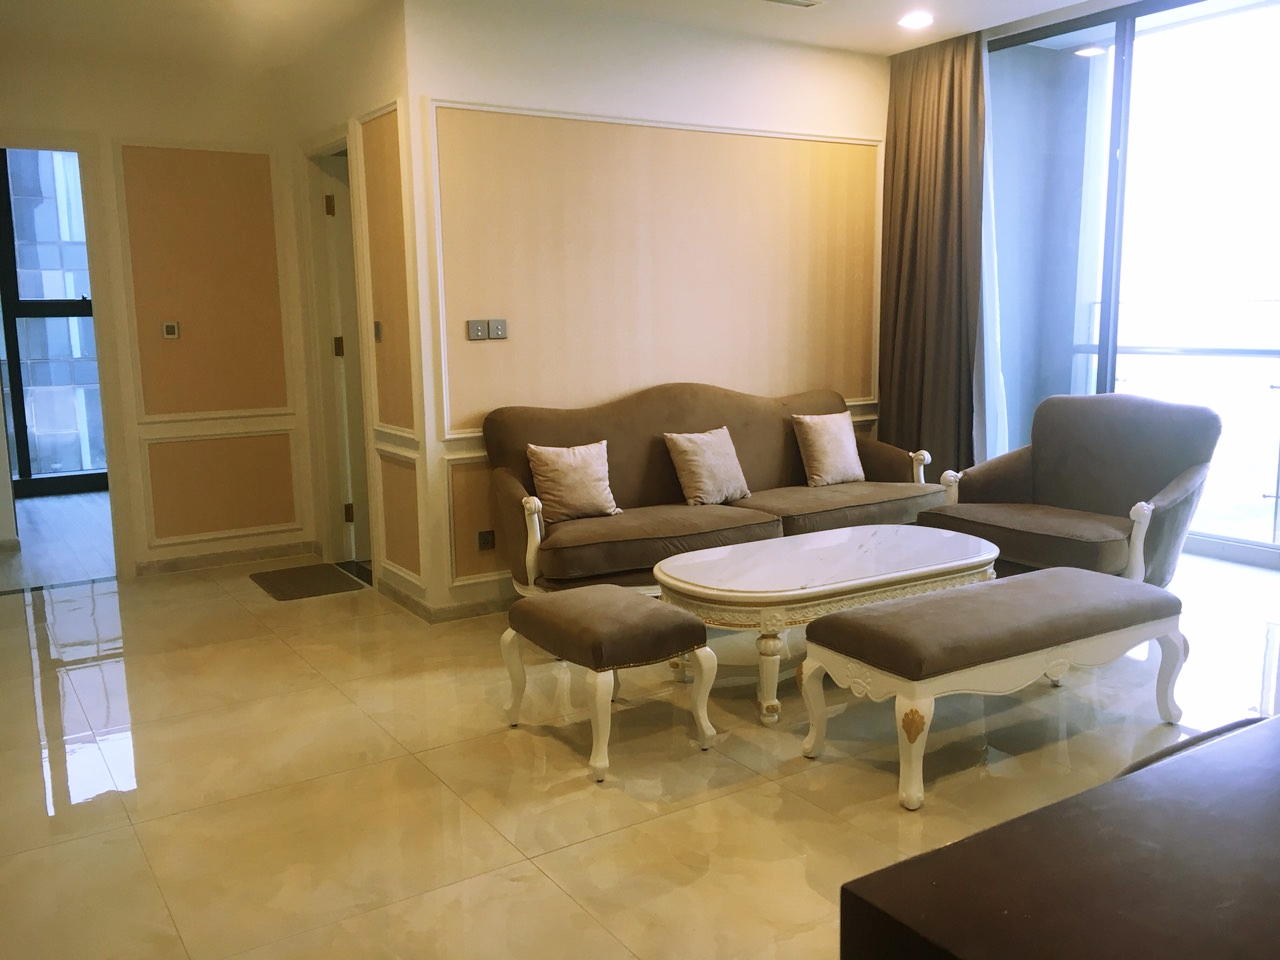 vinhomes golden river apartment for rent in district 1 hcmc D1022699 (1)